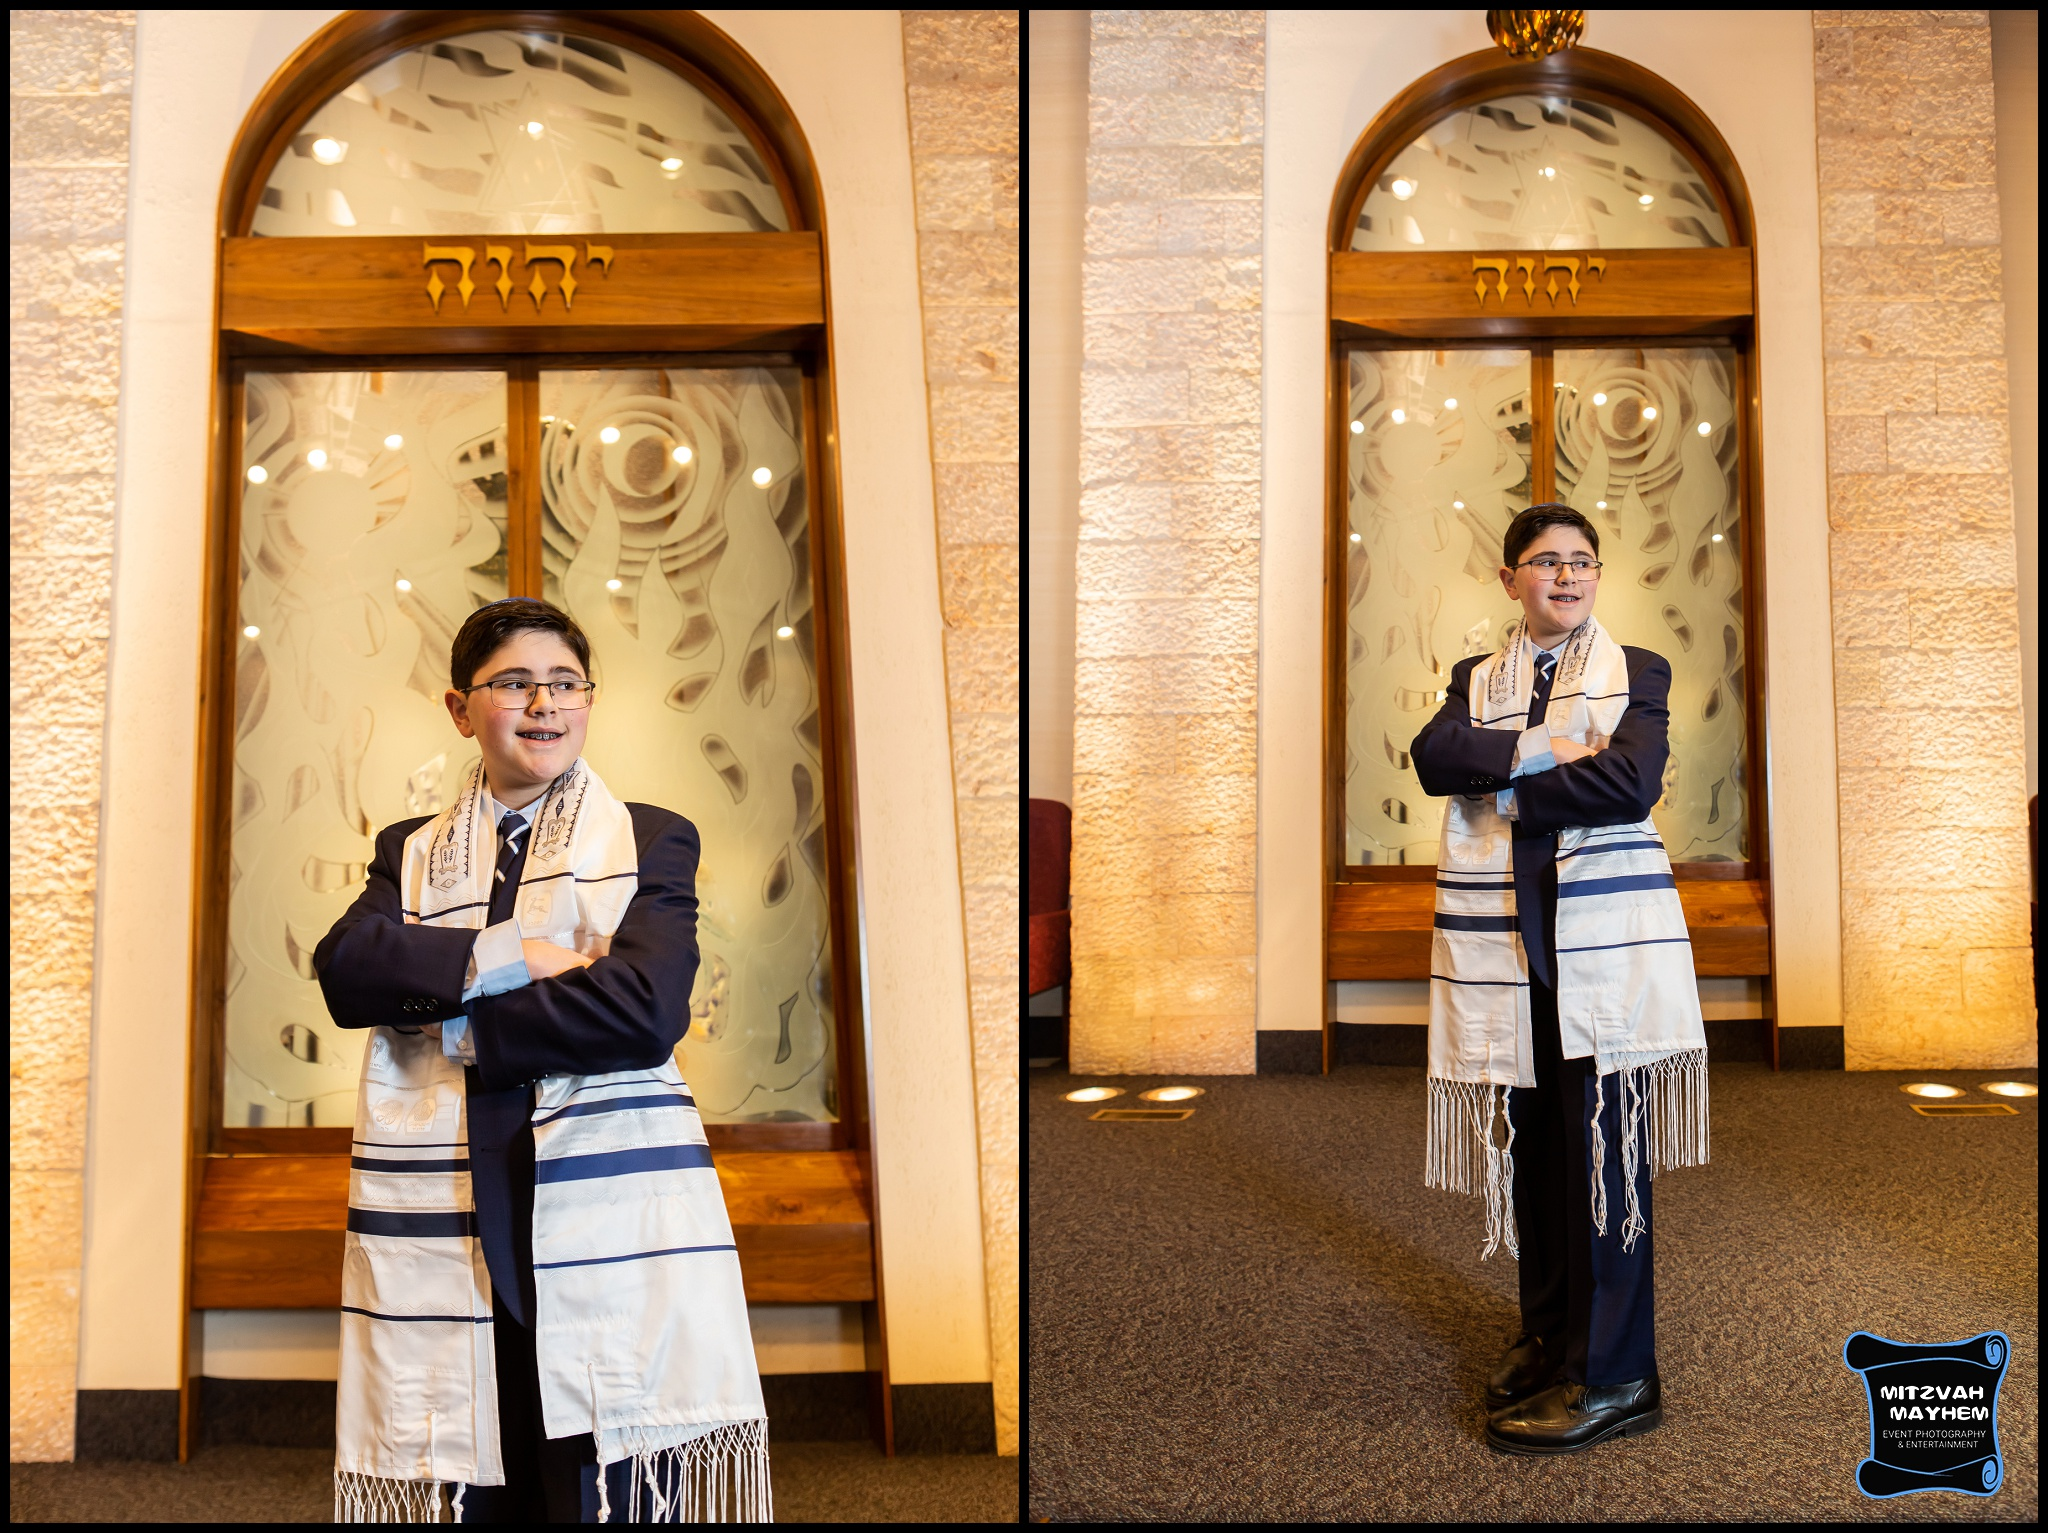 nj-mitzvah-photographer-jacques-caterers-12.JPG